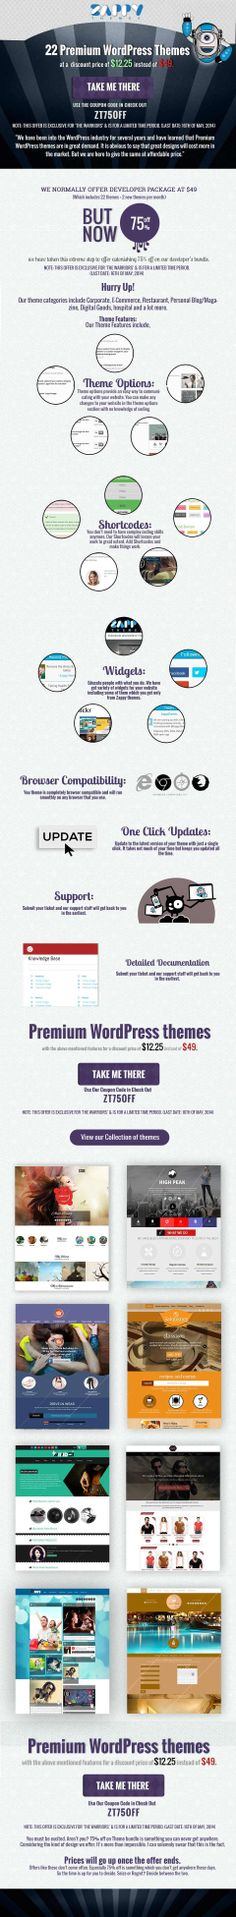 WordPress Web Design Company London · Grab 75% OFF on Our Premium WordPress  Theme Bundle before 16th May 2014. Premium 5a0c91f786